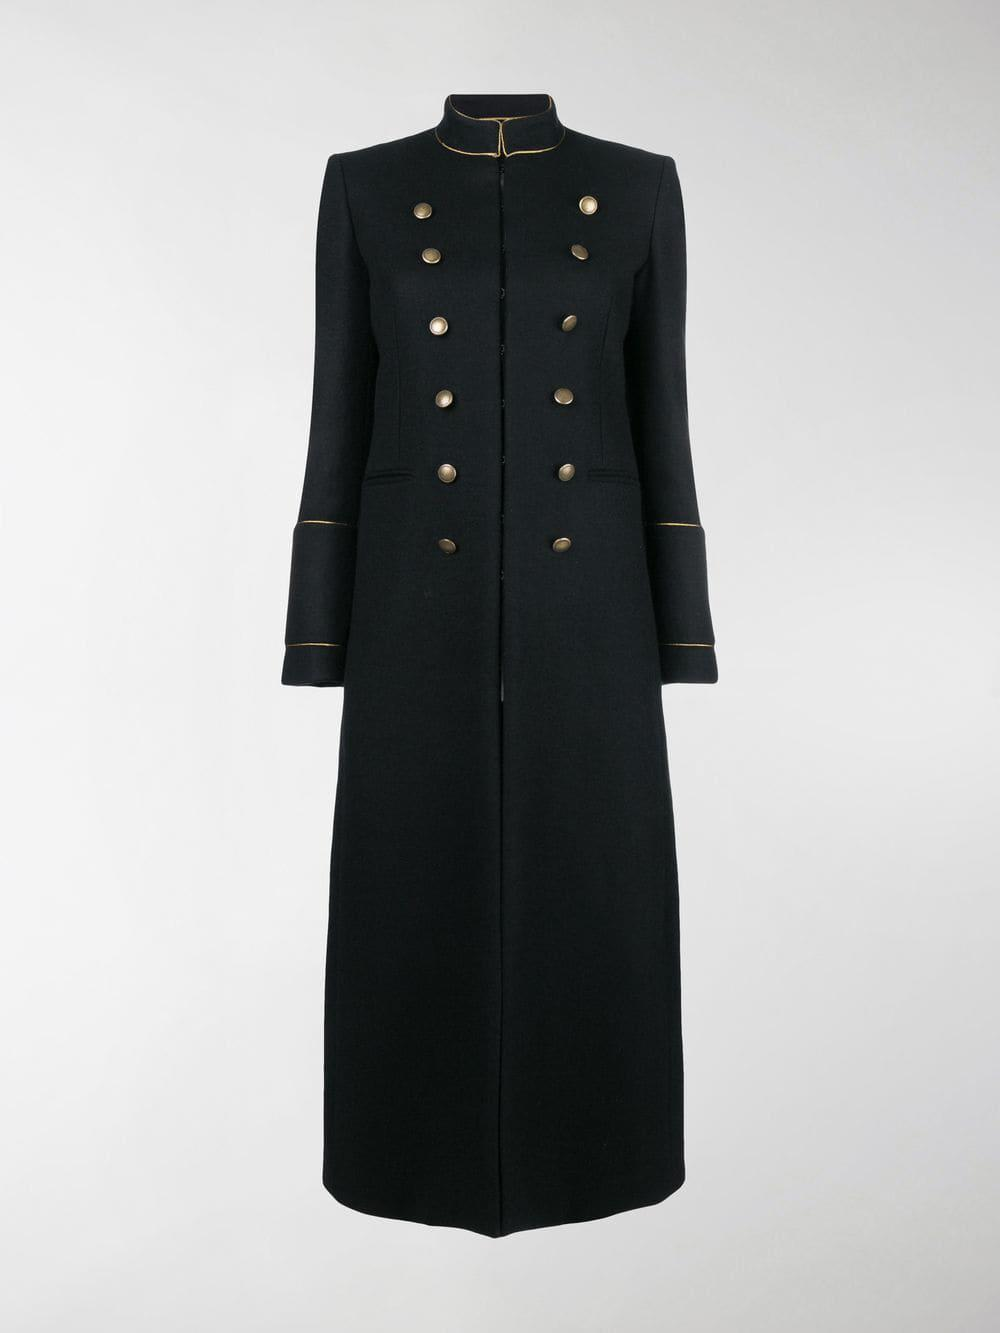 823ff873b4e Saint Laurent Military Coat in Black - Lyst